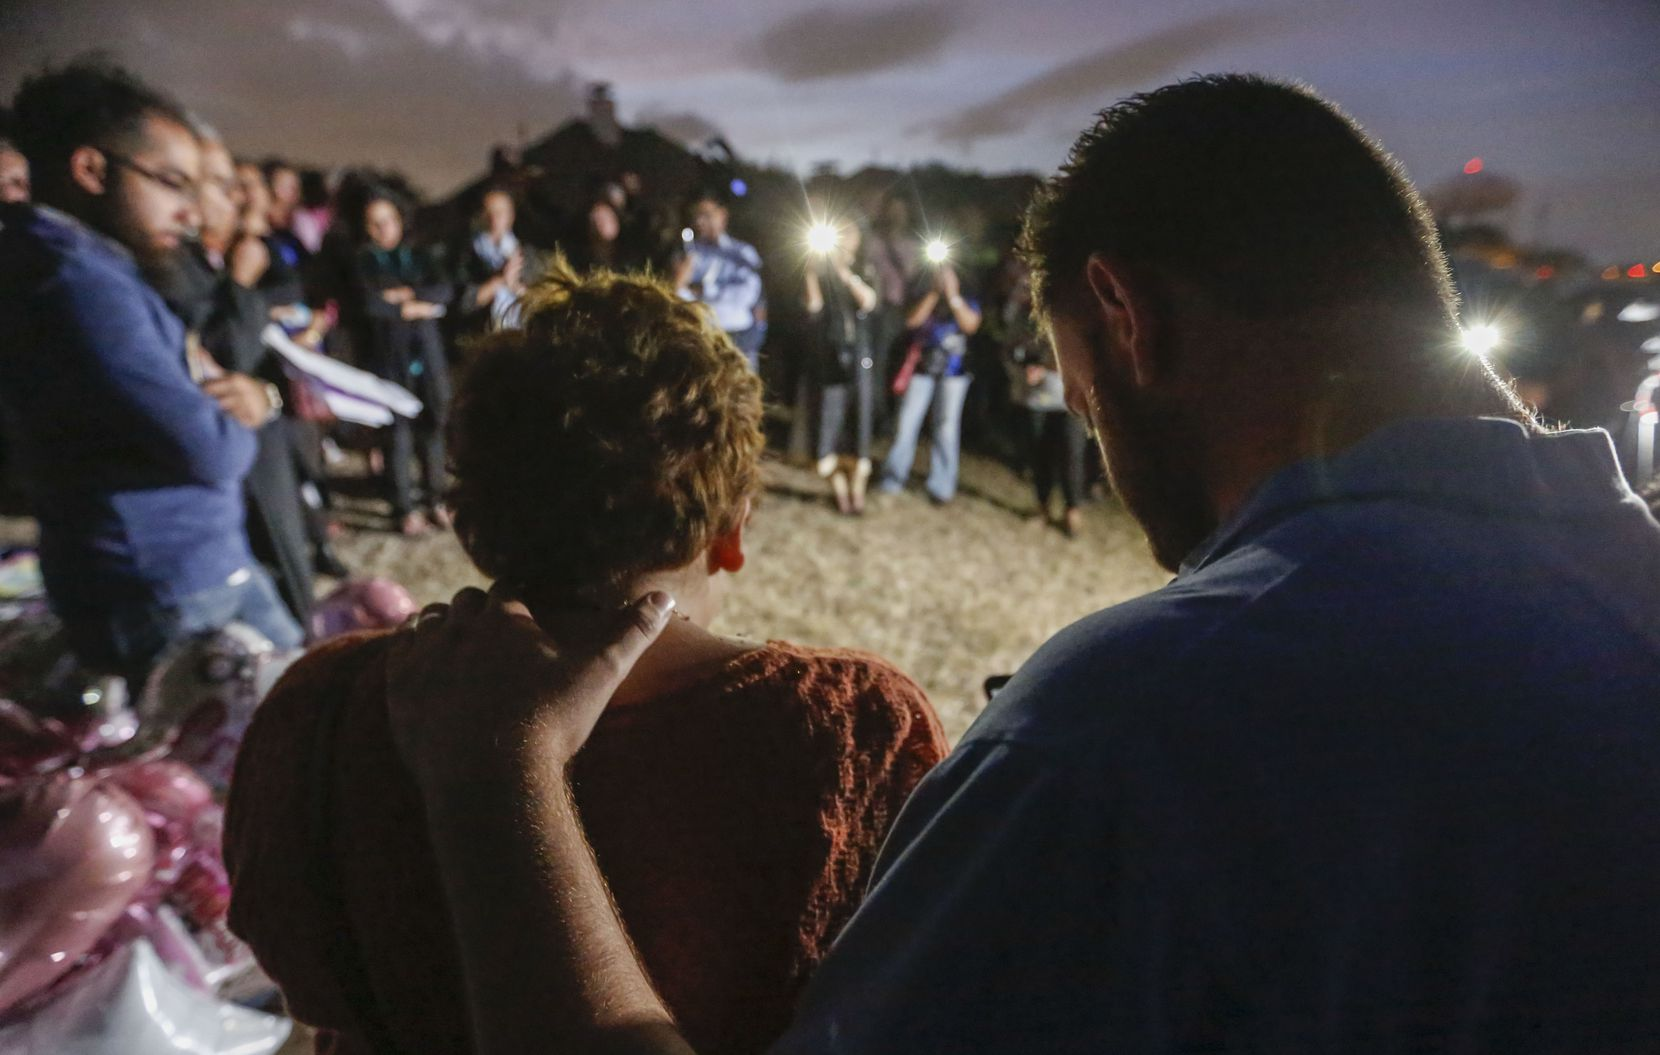 Nicole and Scott Snyder bow their heads in prayer at an Oct. 20 vigil for Sherin Mathews in Richardson. The Snyders created the Finding Sherin Mathews Facebook page and helped organize the vigil.